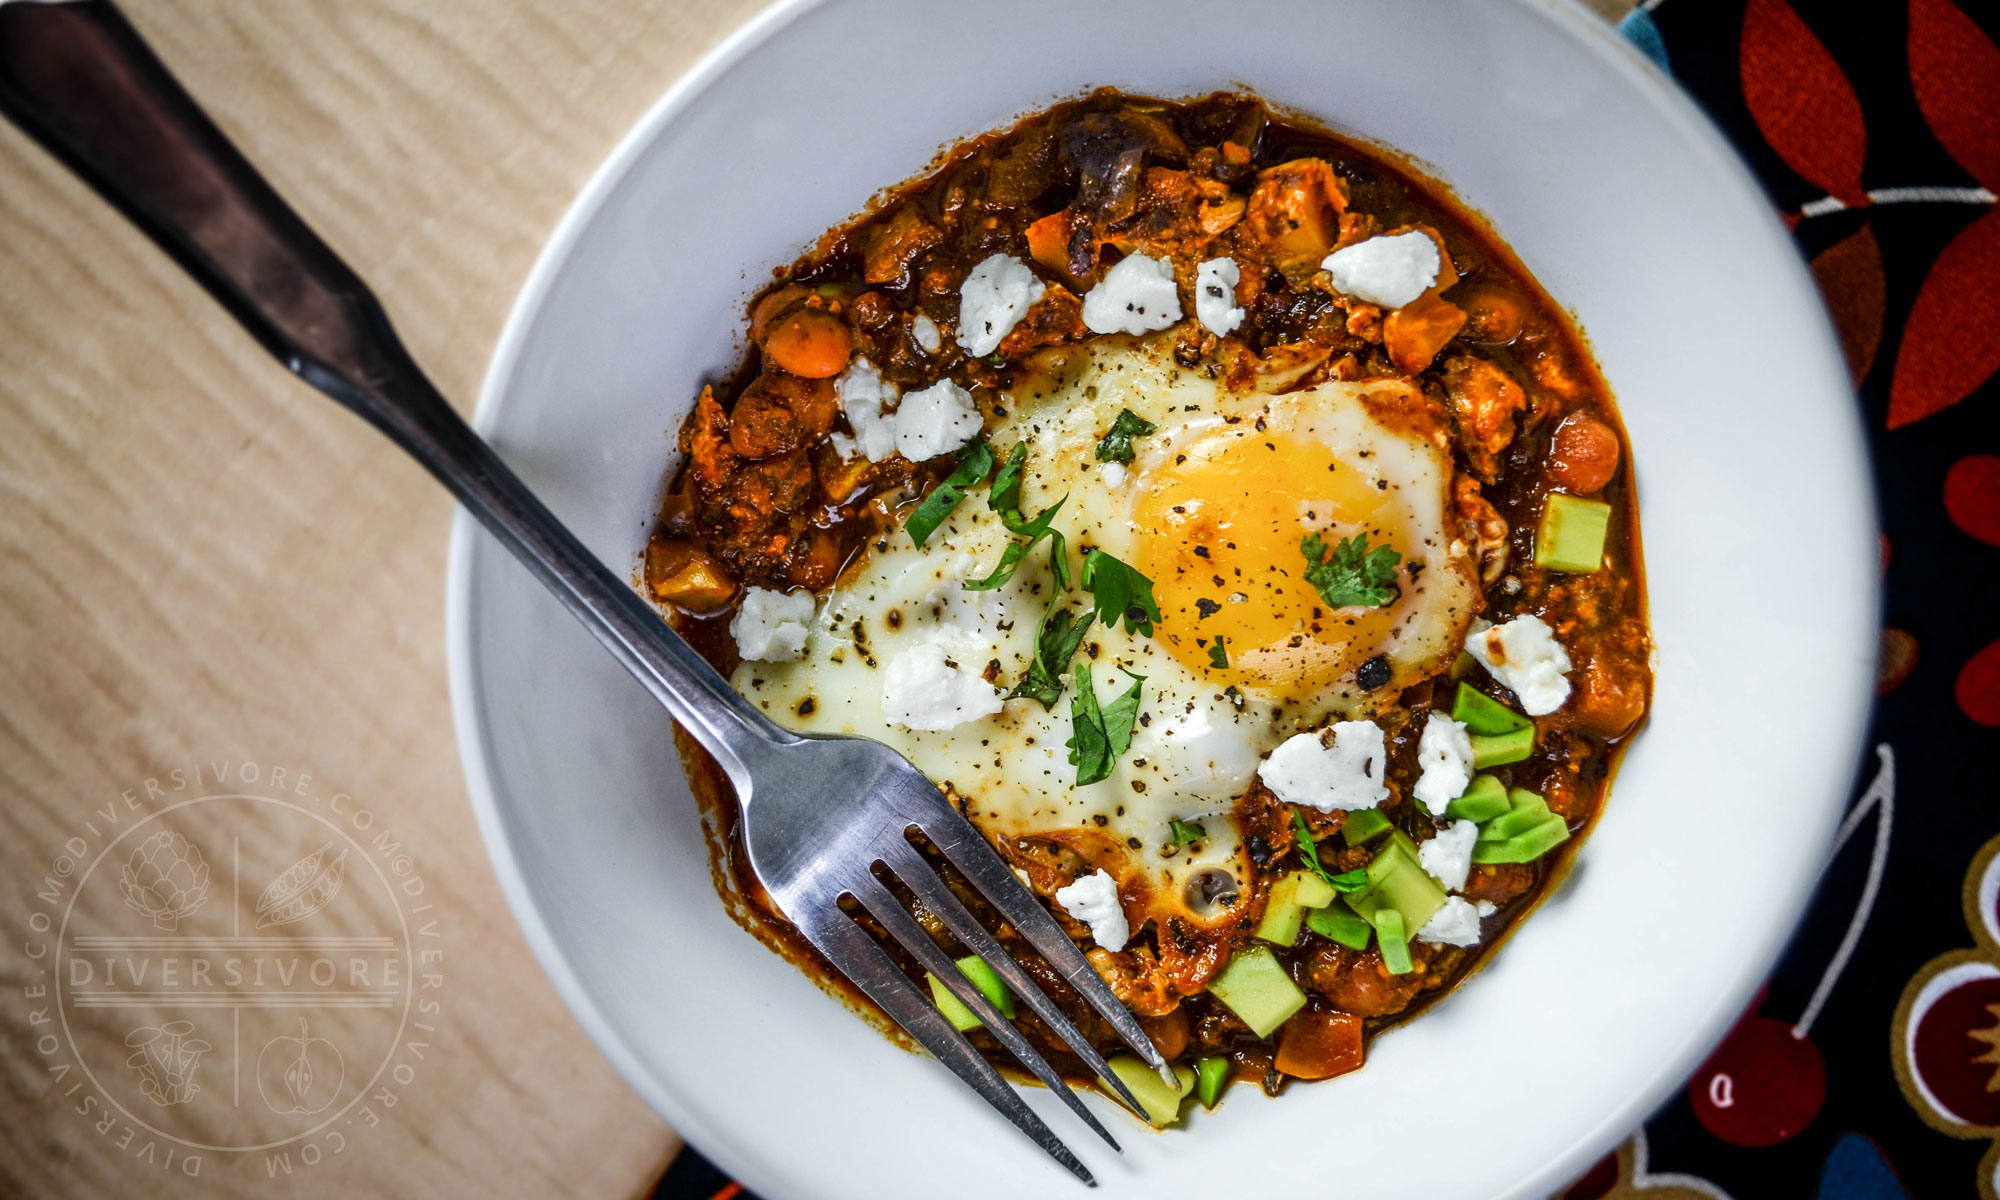 Shakshouka Rancheros - Eggs cooked in a Mexican tomato sauce